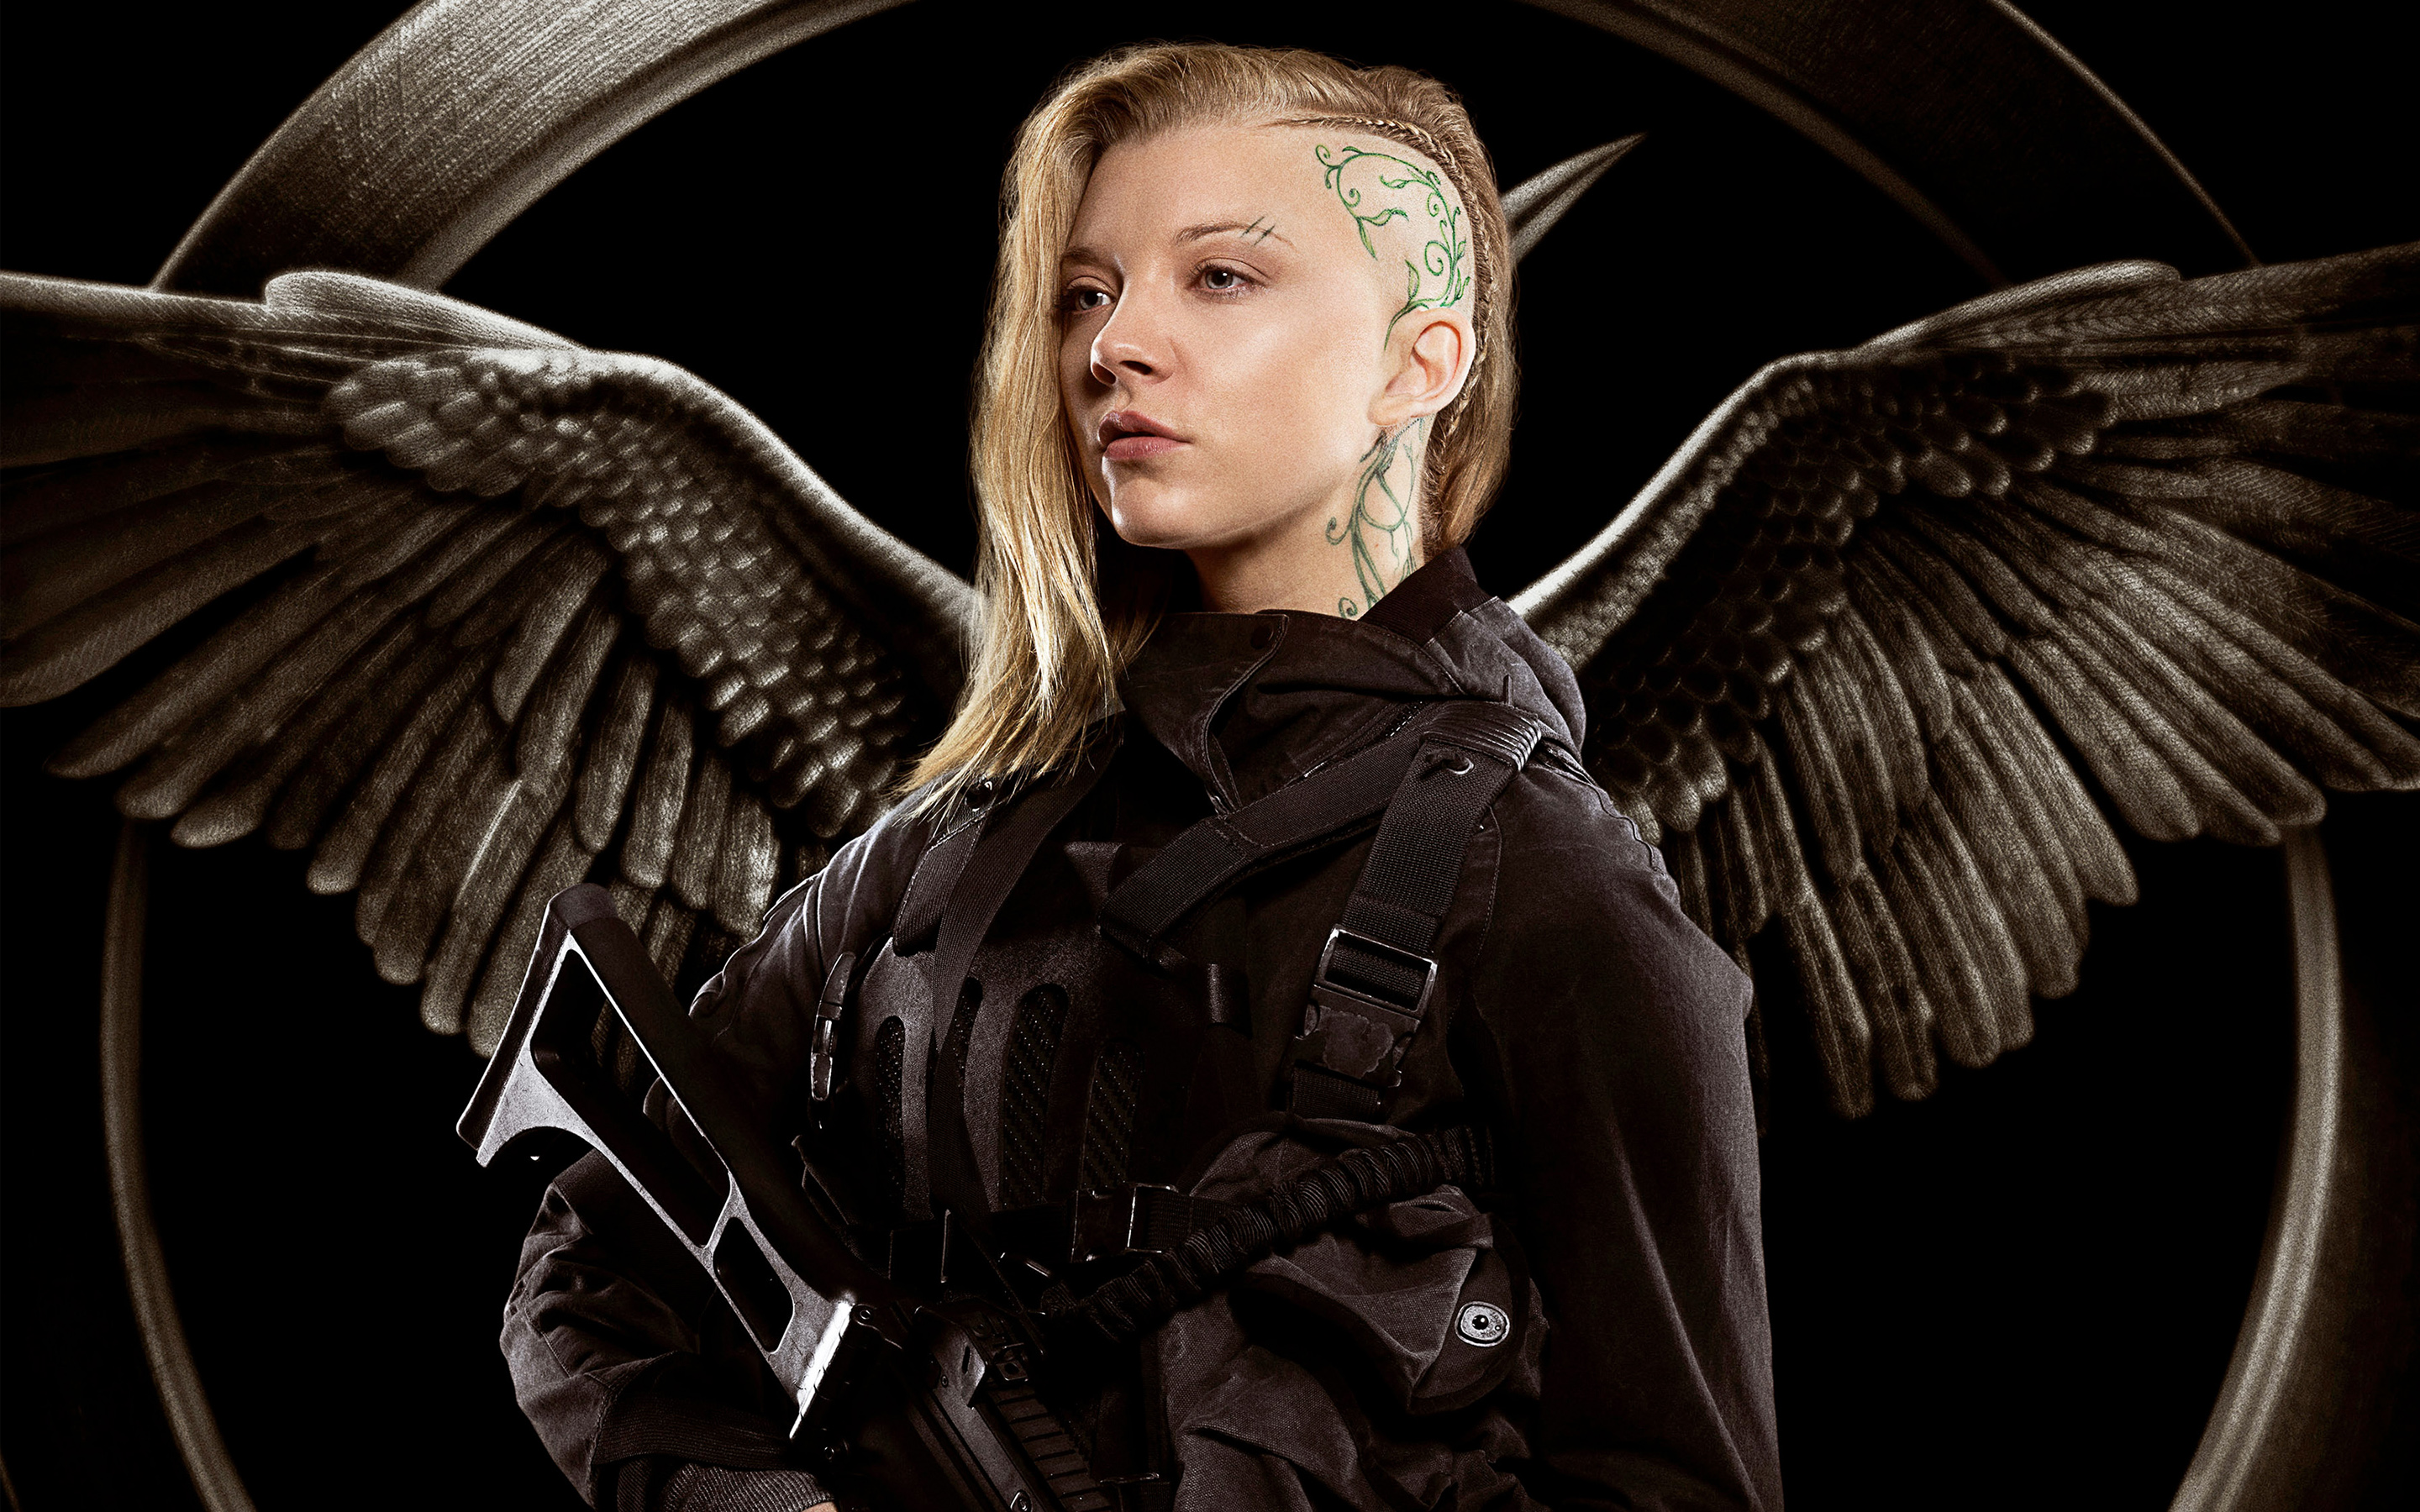 The hunger games mockingjay part 1 full hd wallpaper and movie the hunger games mockingjay part 1 natalie dormer cressida the hunger voltagebd Choice Image